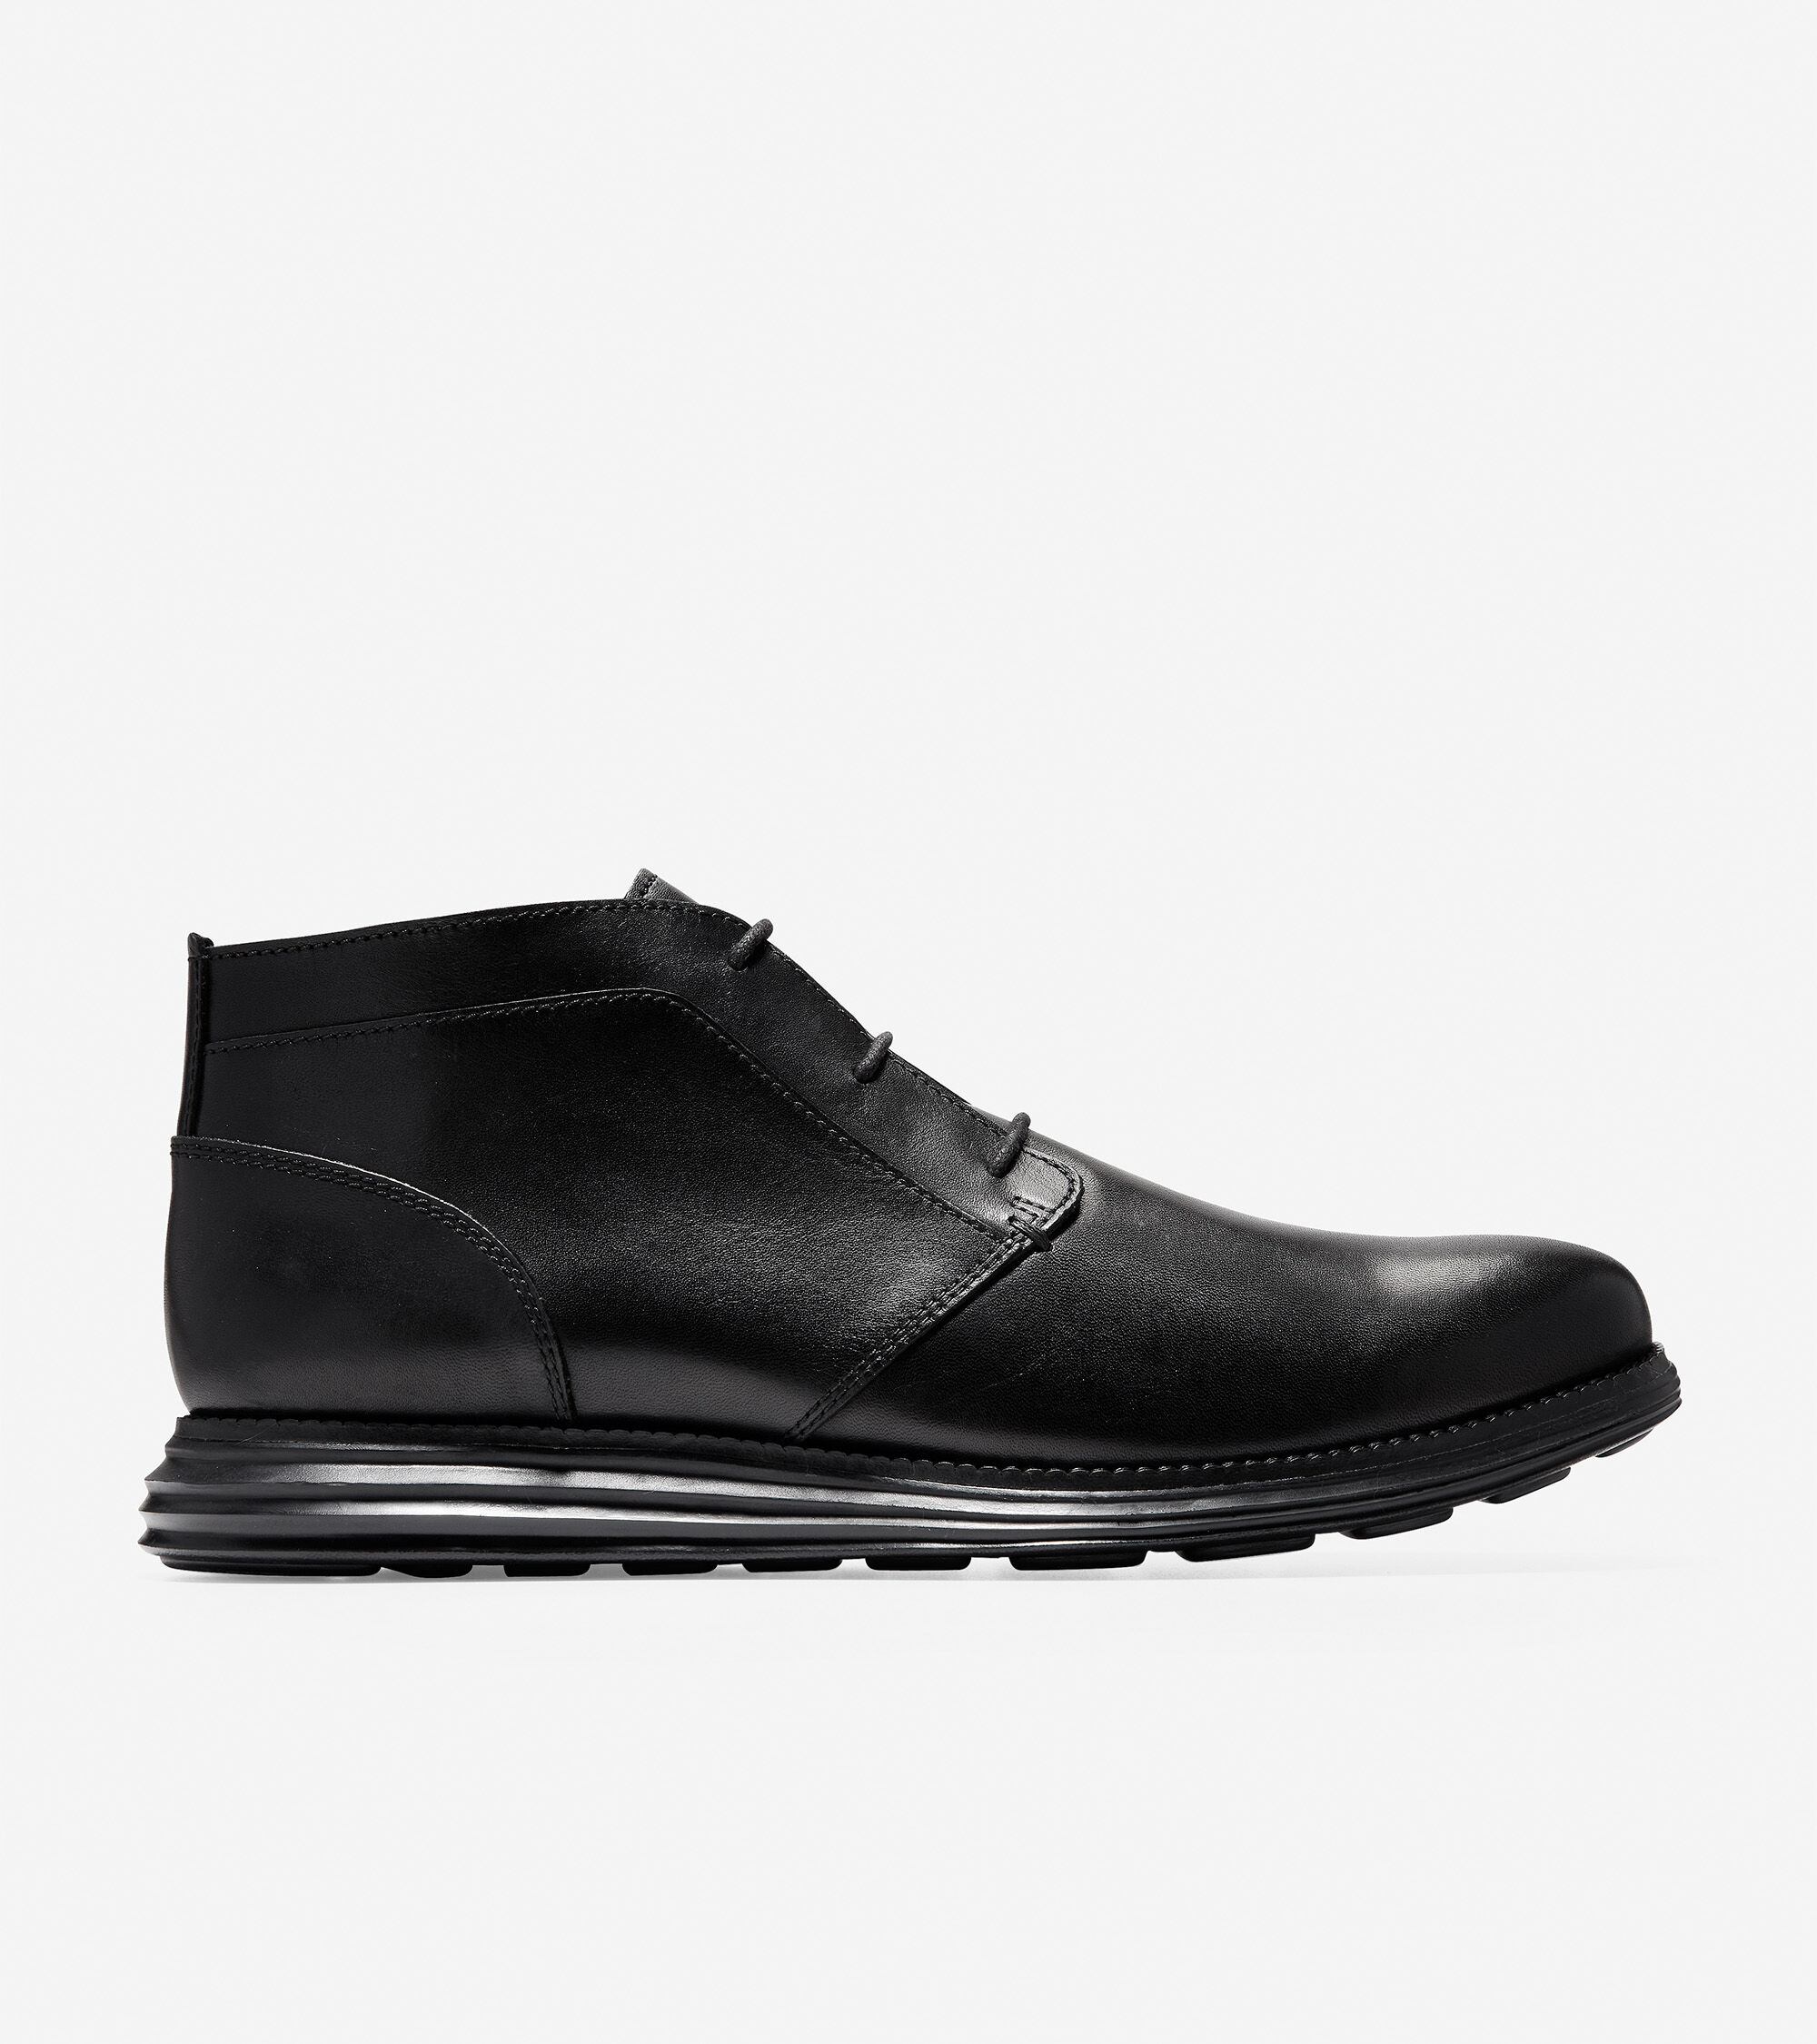 Men's Collections | GRAND Shoes, Best